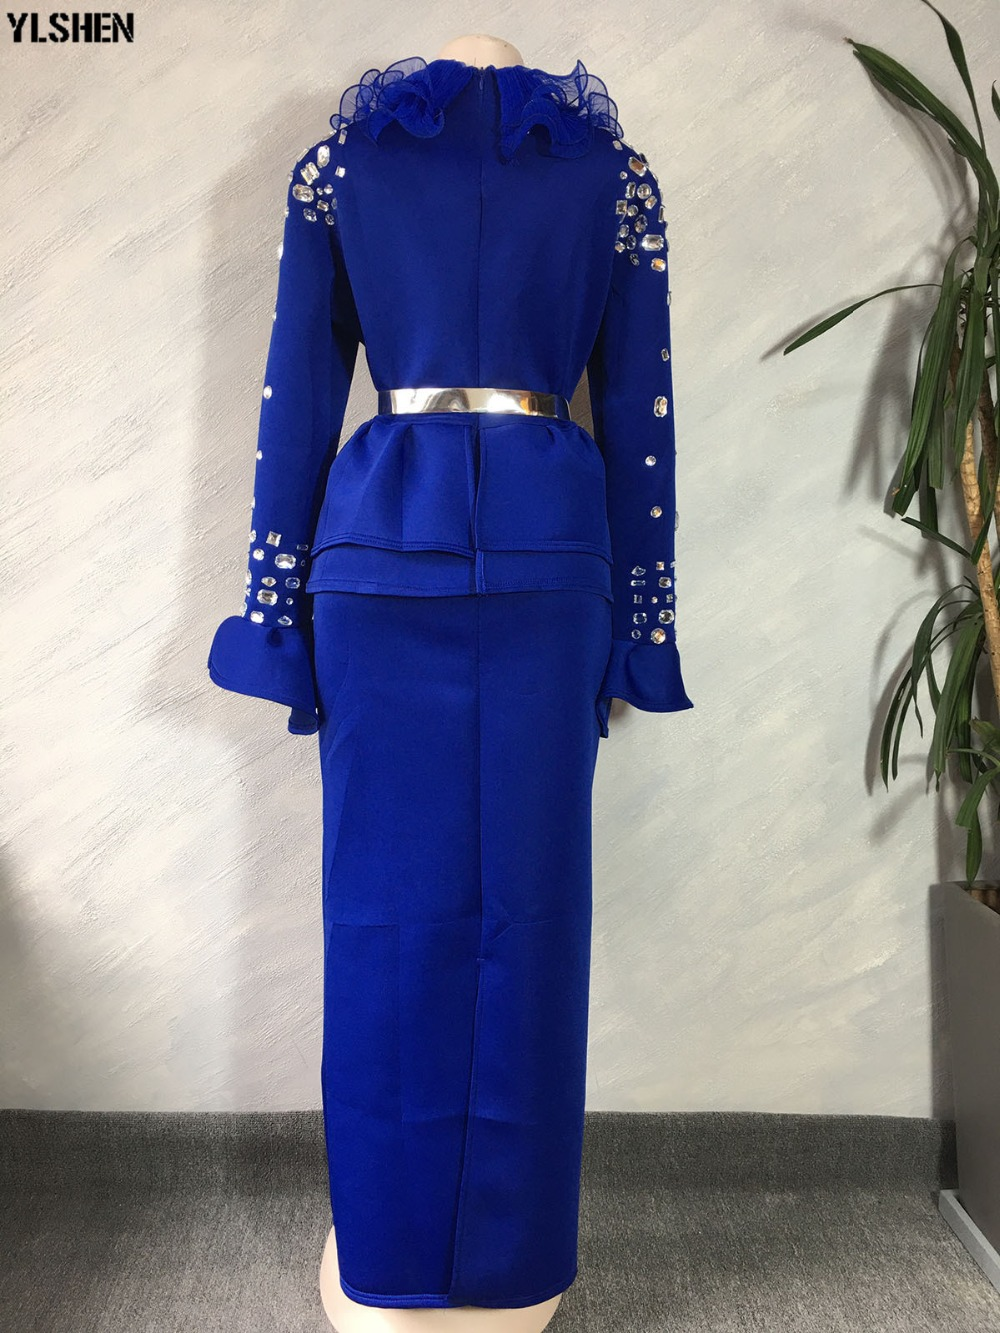 Length 150cm African Dresses for Women Dashiki Nail Bead African Clothes Space Layer African Gown Skirt Long Sleeve Africa Dress 19